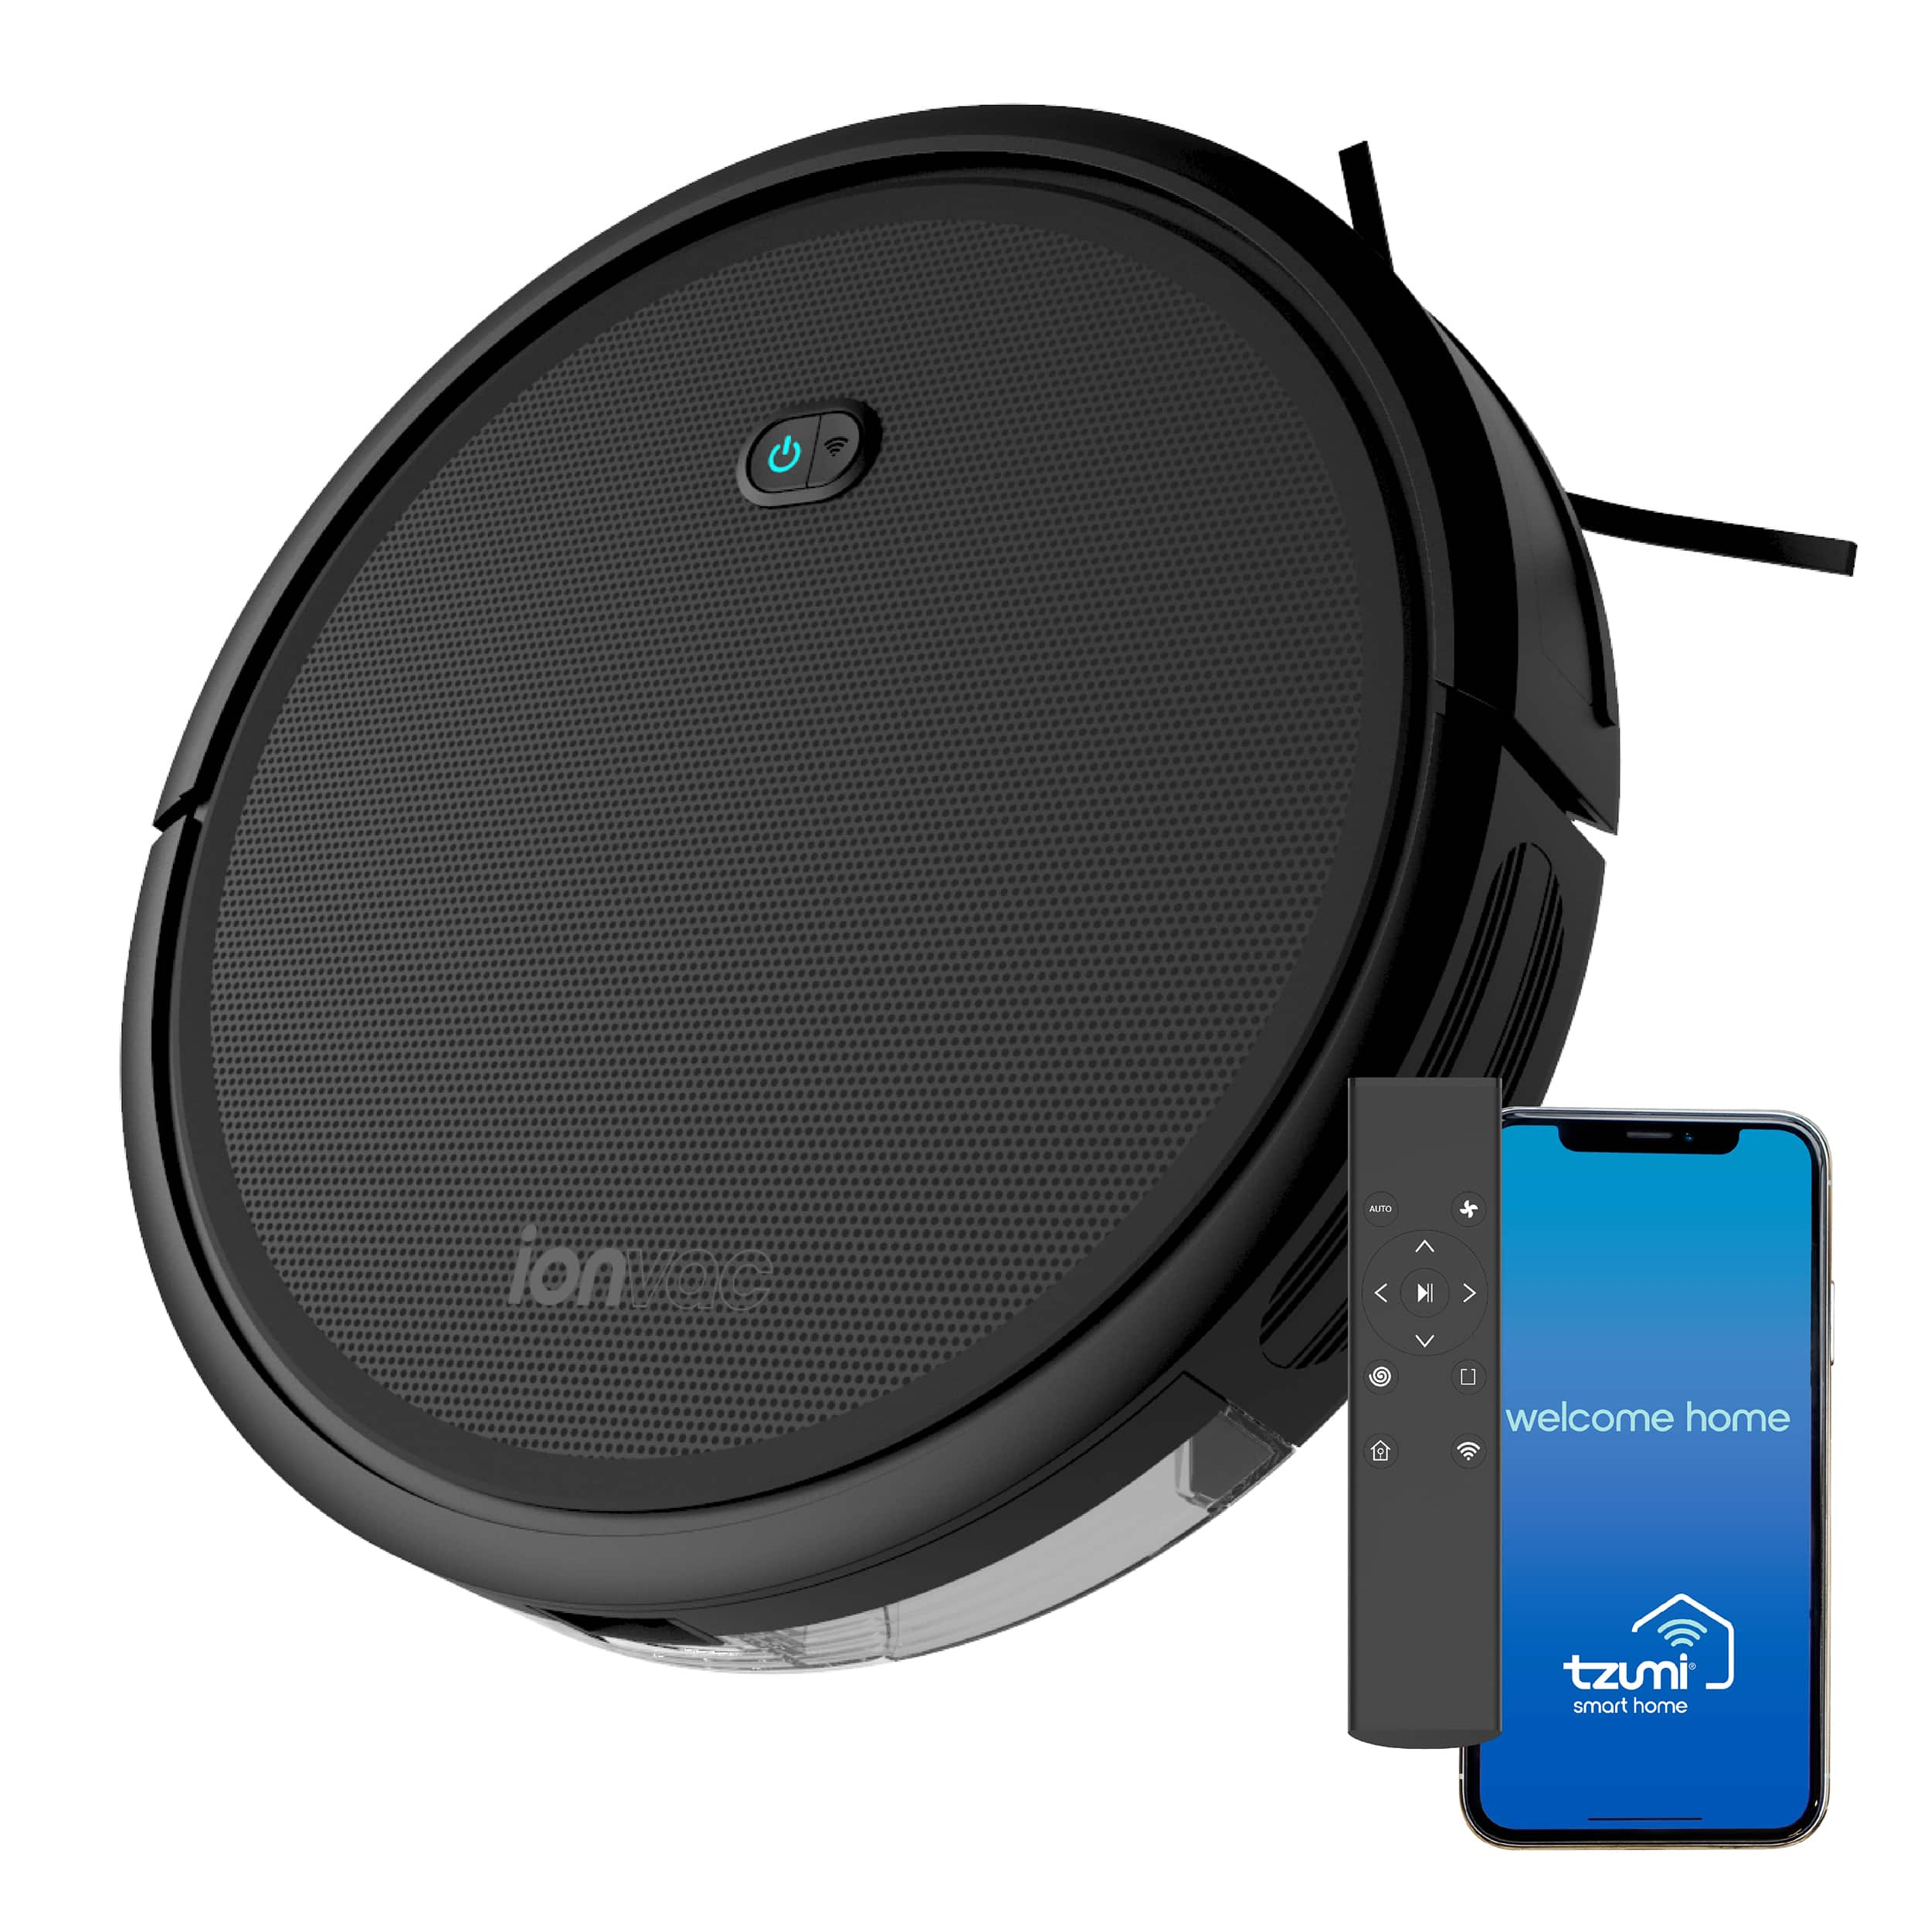 $99 ionVac Robot Vacuum, Powerful (2000Pa Suction) Wi-Fi Connected + FREE Delivery